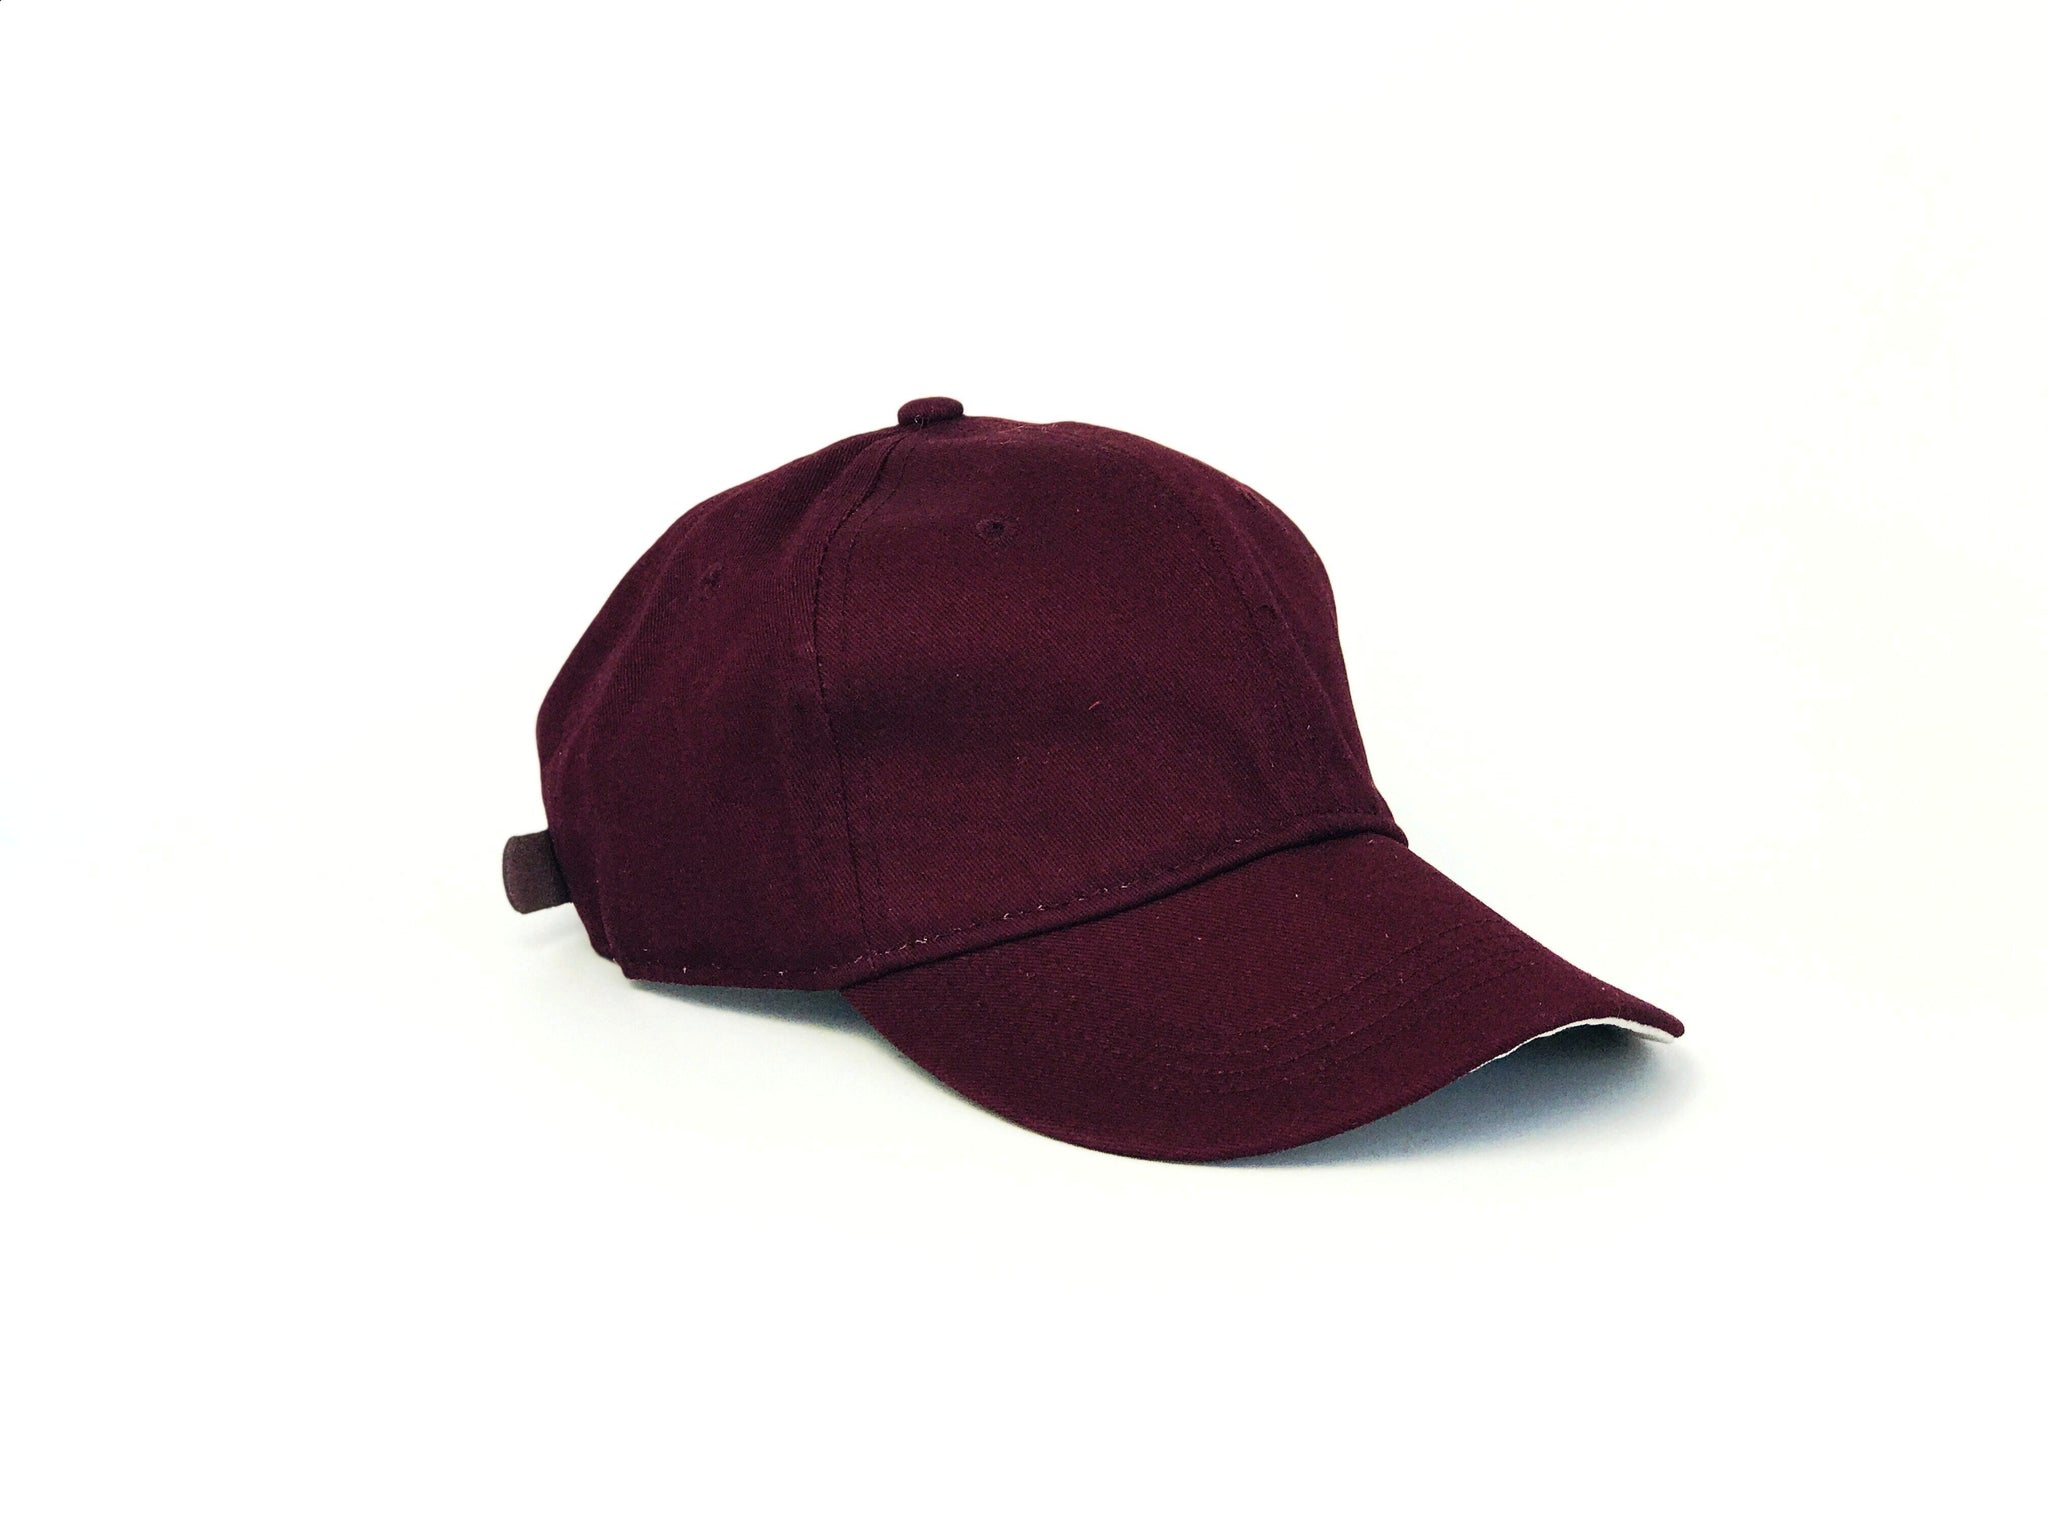 The Traveler - 100% Cotton - Wine